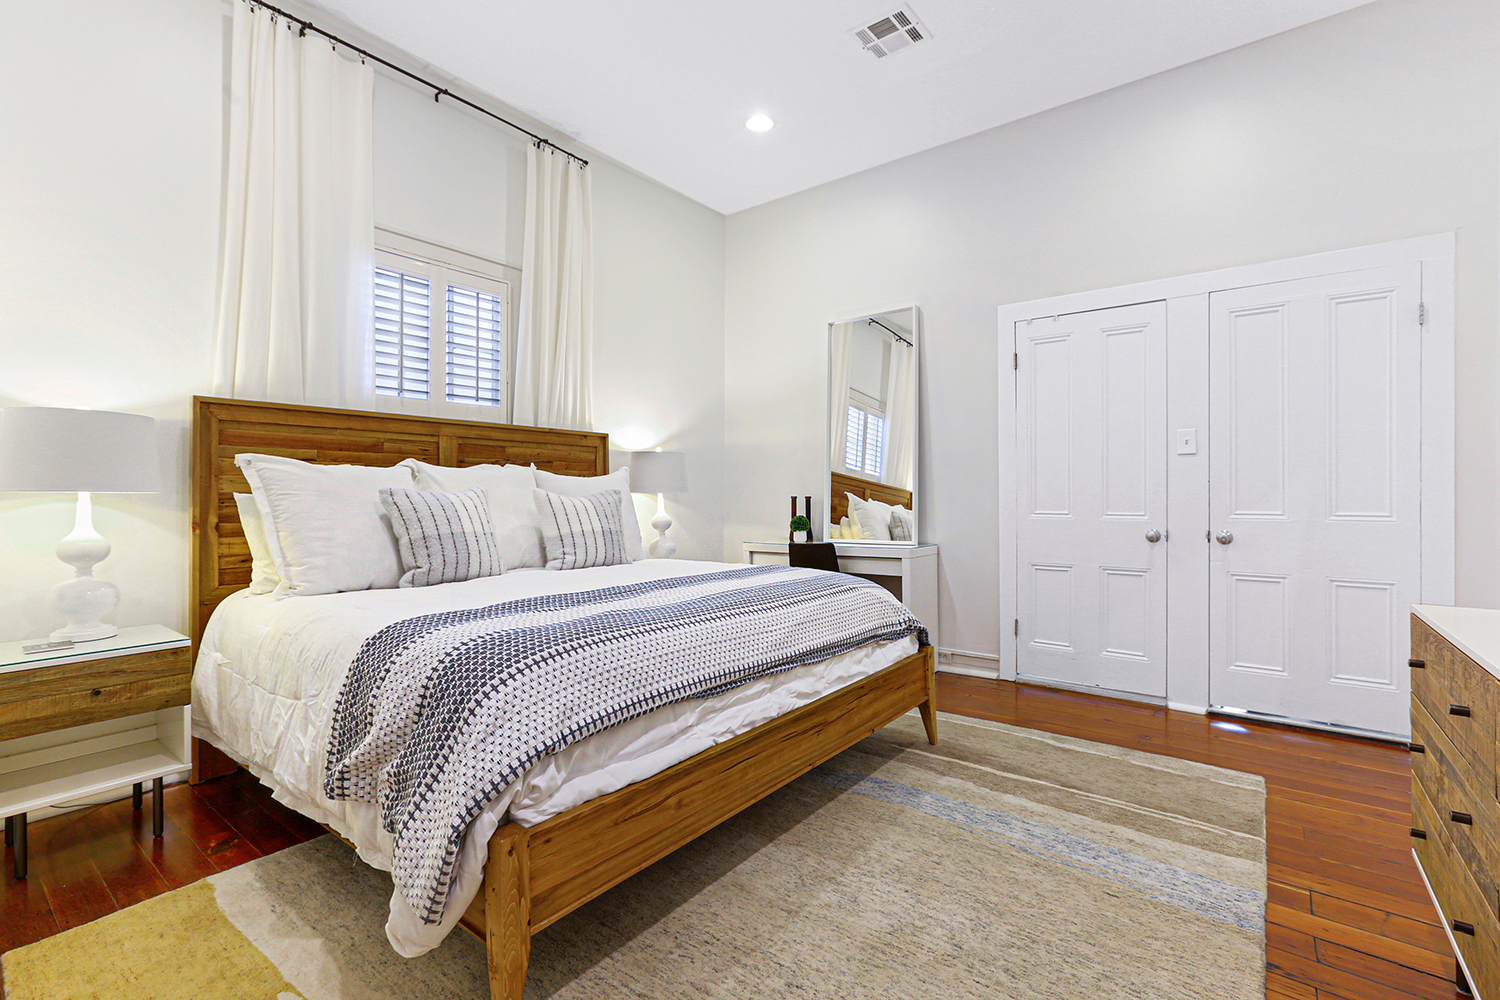 Garden District, House, 2 beds, 2.0 baths, $5500 per month New Orleans Rental - devie image_13